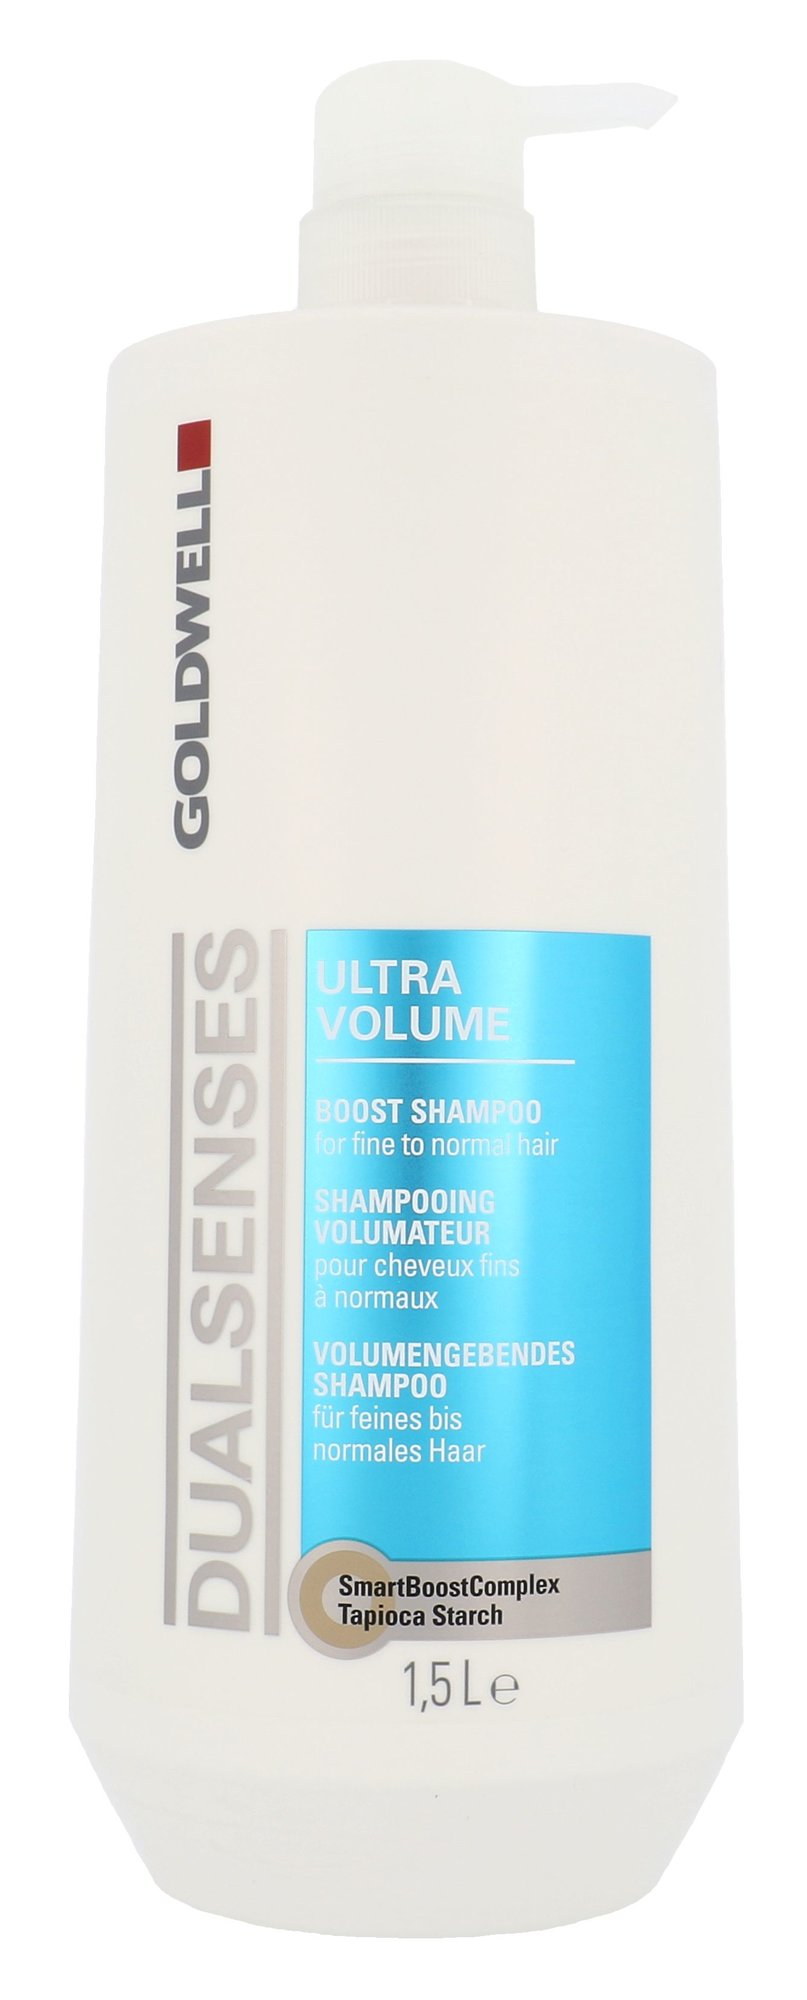 Goldwell Dualsenses Ultra Volume Cosmetic 1500ml